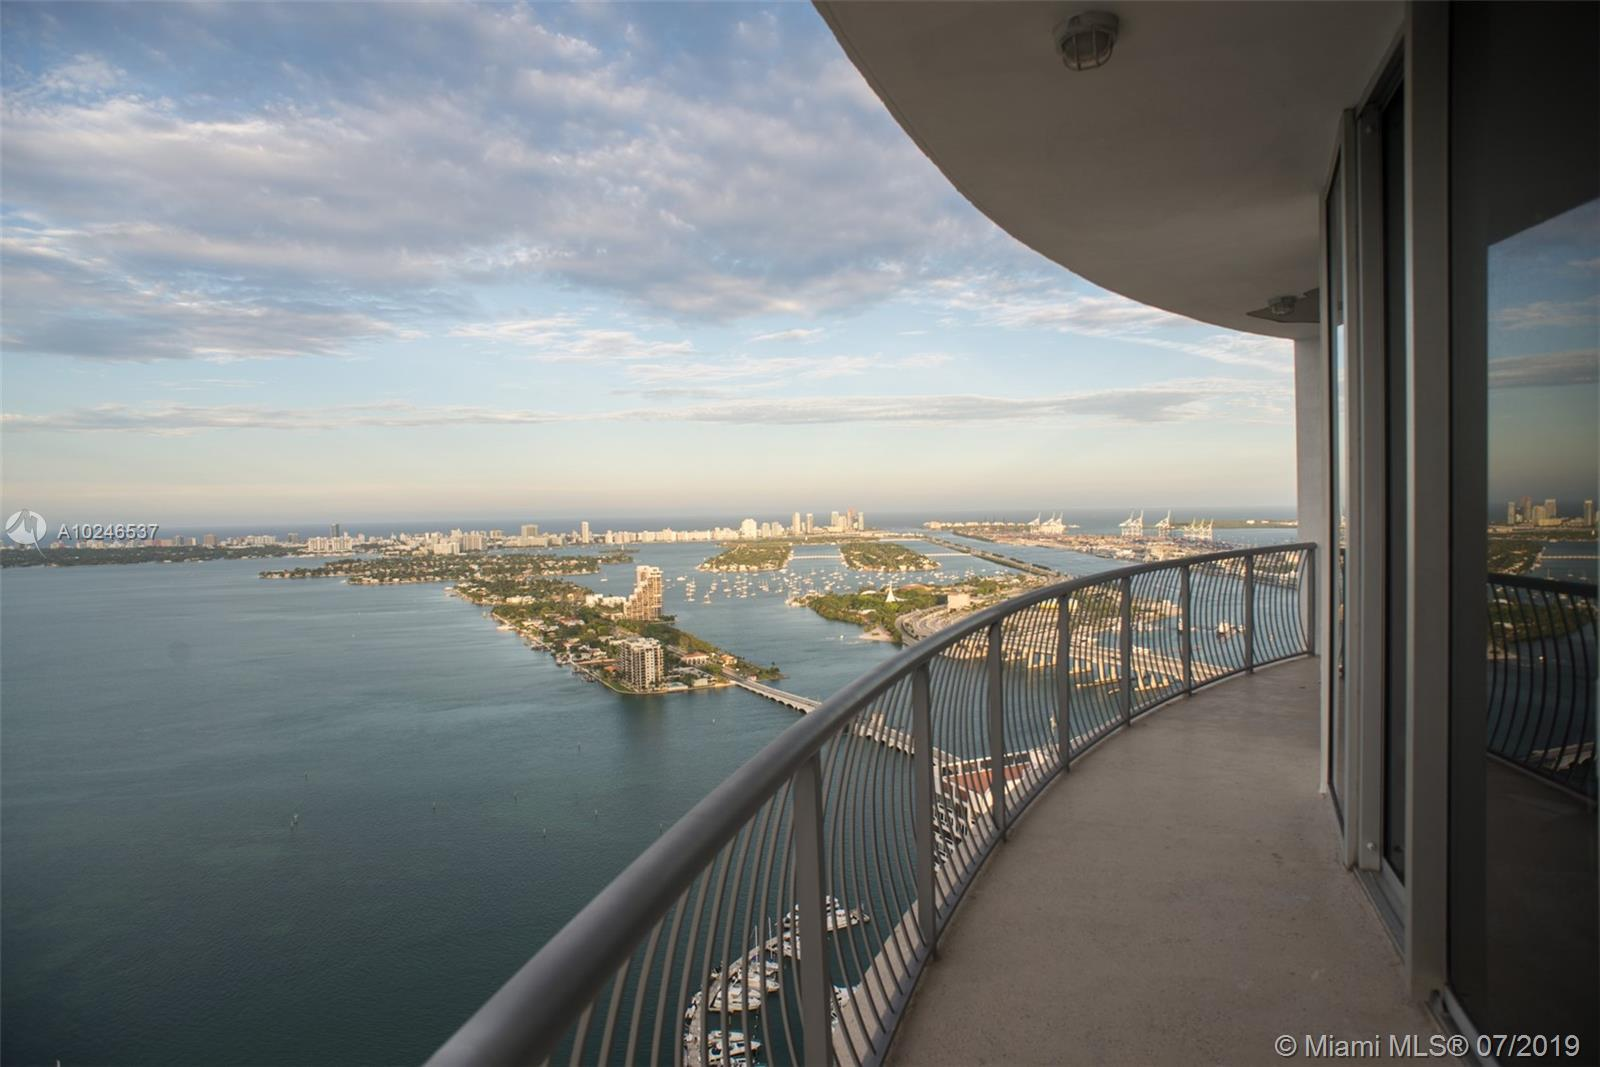 Breath Taking 180 Degree Views From This Penthouse Unit! Gorgeous 2/2 With 12-Foot High Ceilings In The Resort-Style Building Of Opera Tower. Opera Tower Has A Circular Architecture Which Is Was Designed By Rolando Llanes. This Is One Of The Best Units In This Building. Enjoy Views To South Beach, Star Island, Fisher Island, Port Of Miami Etc. Amenities Include Fully-Equipped Business Center, State-Of-The-Art Fitness Center With Cardio And Training Equipment. Owner Financing Available Up To 65%.